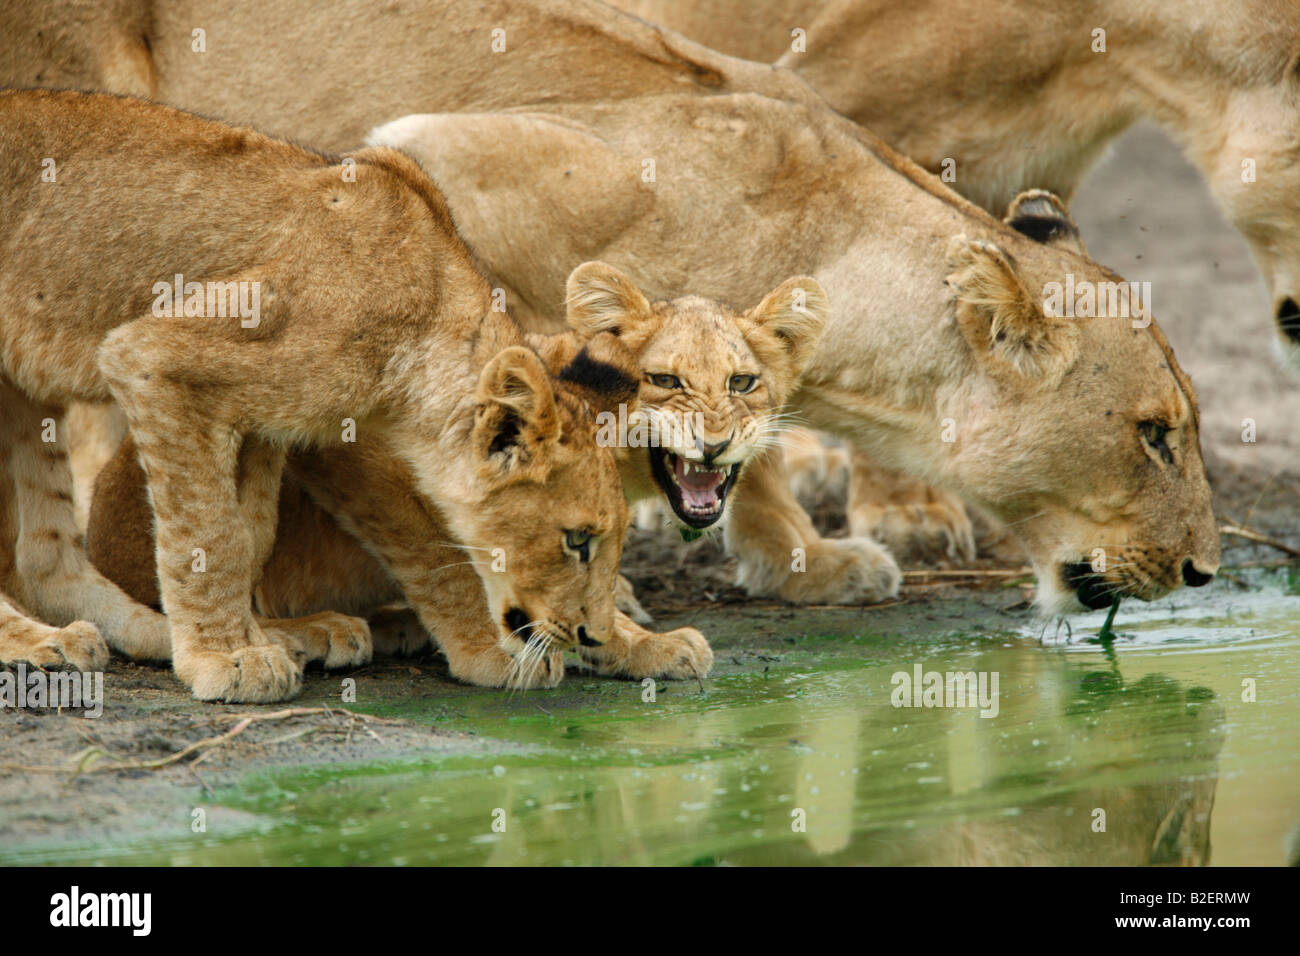 Lion pride with a snarling cub drinking from a natural wateringhole - Stock Image